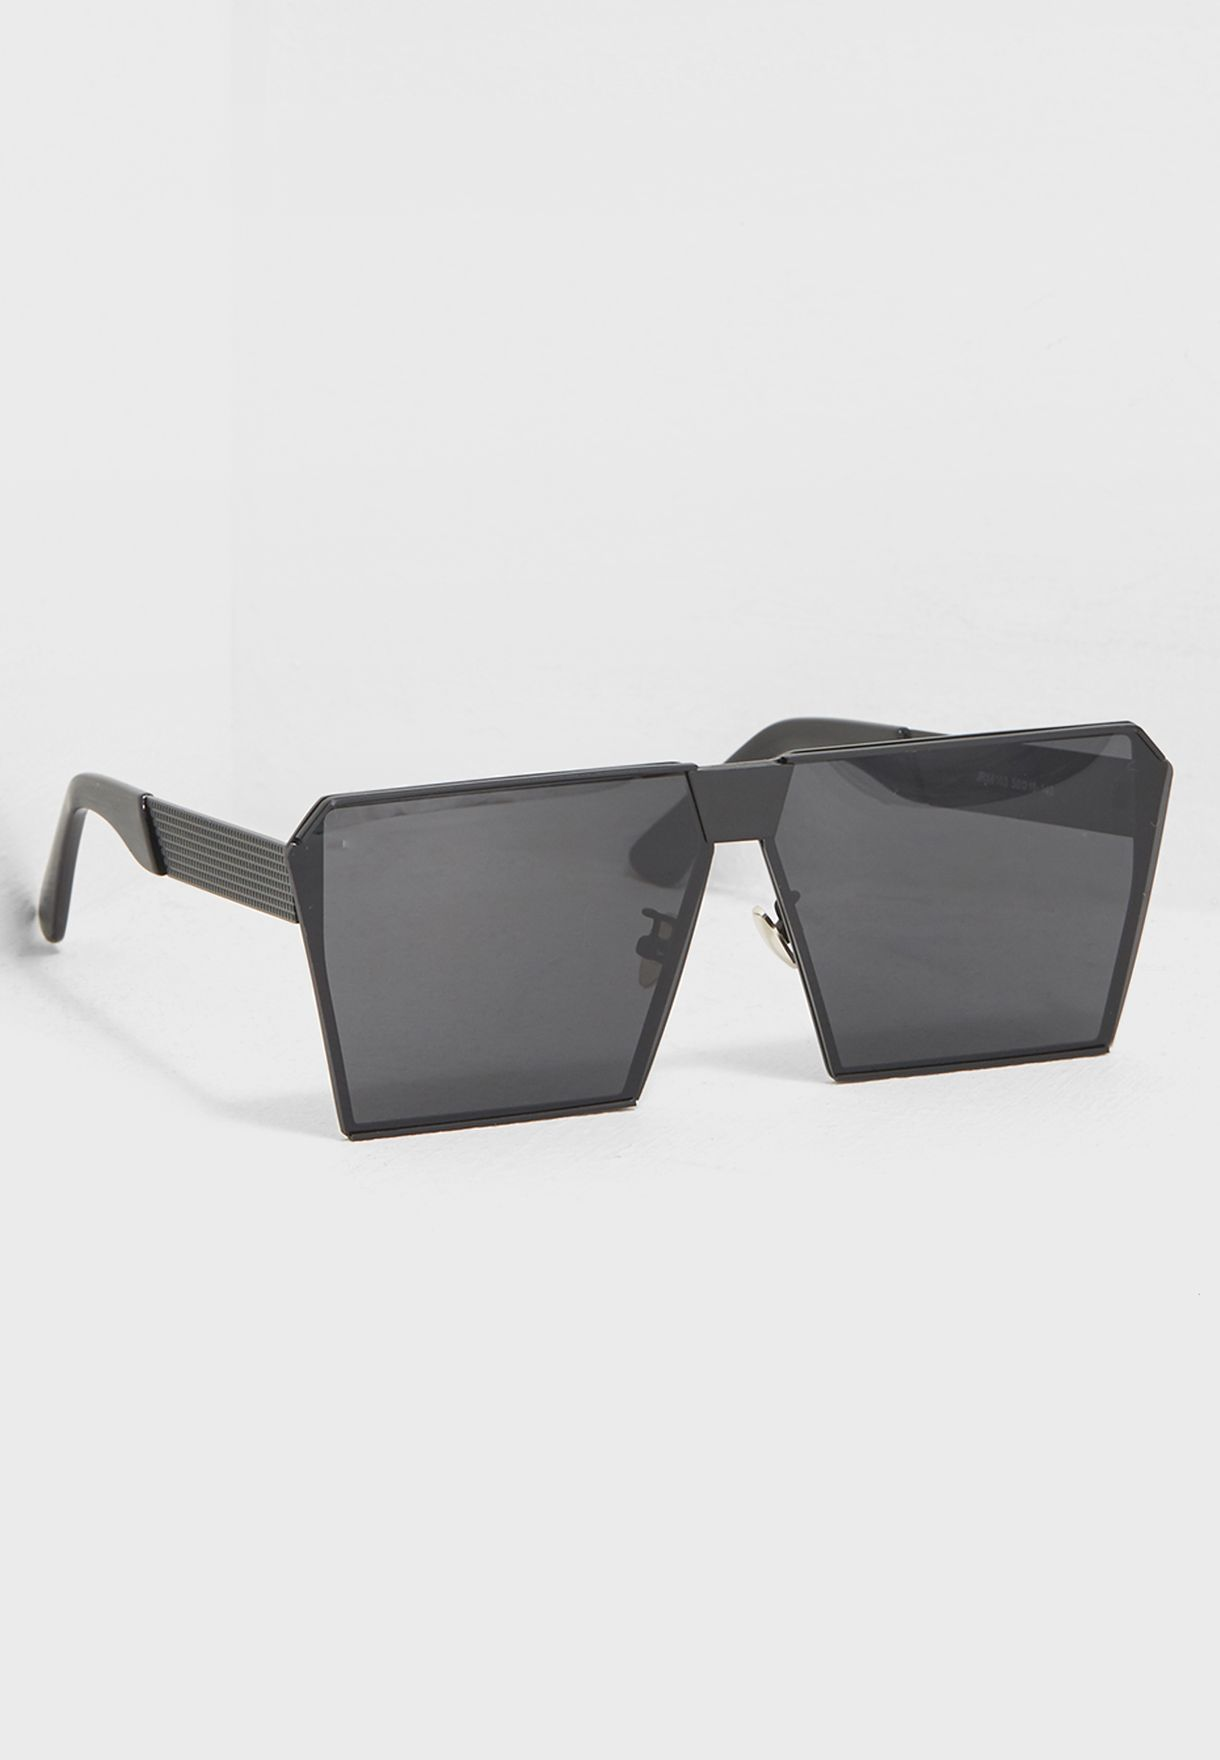 0e2d5532d77 Shop Seventy five black Square Sunglasses JR66103 for Men in Saudi -  SE177AC06IPX